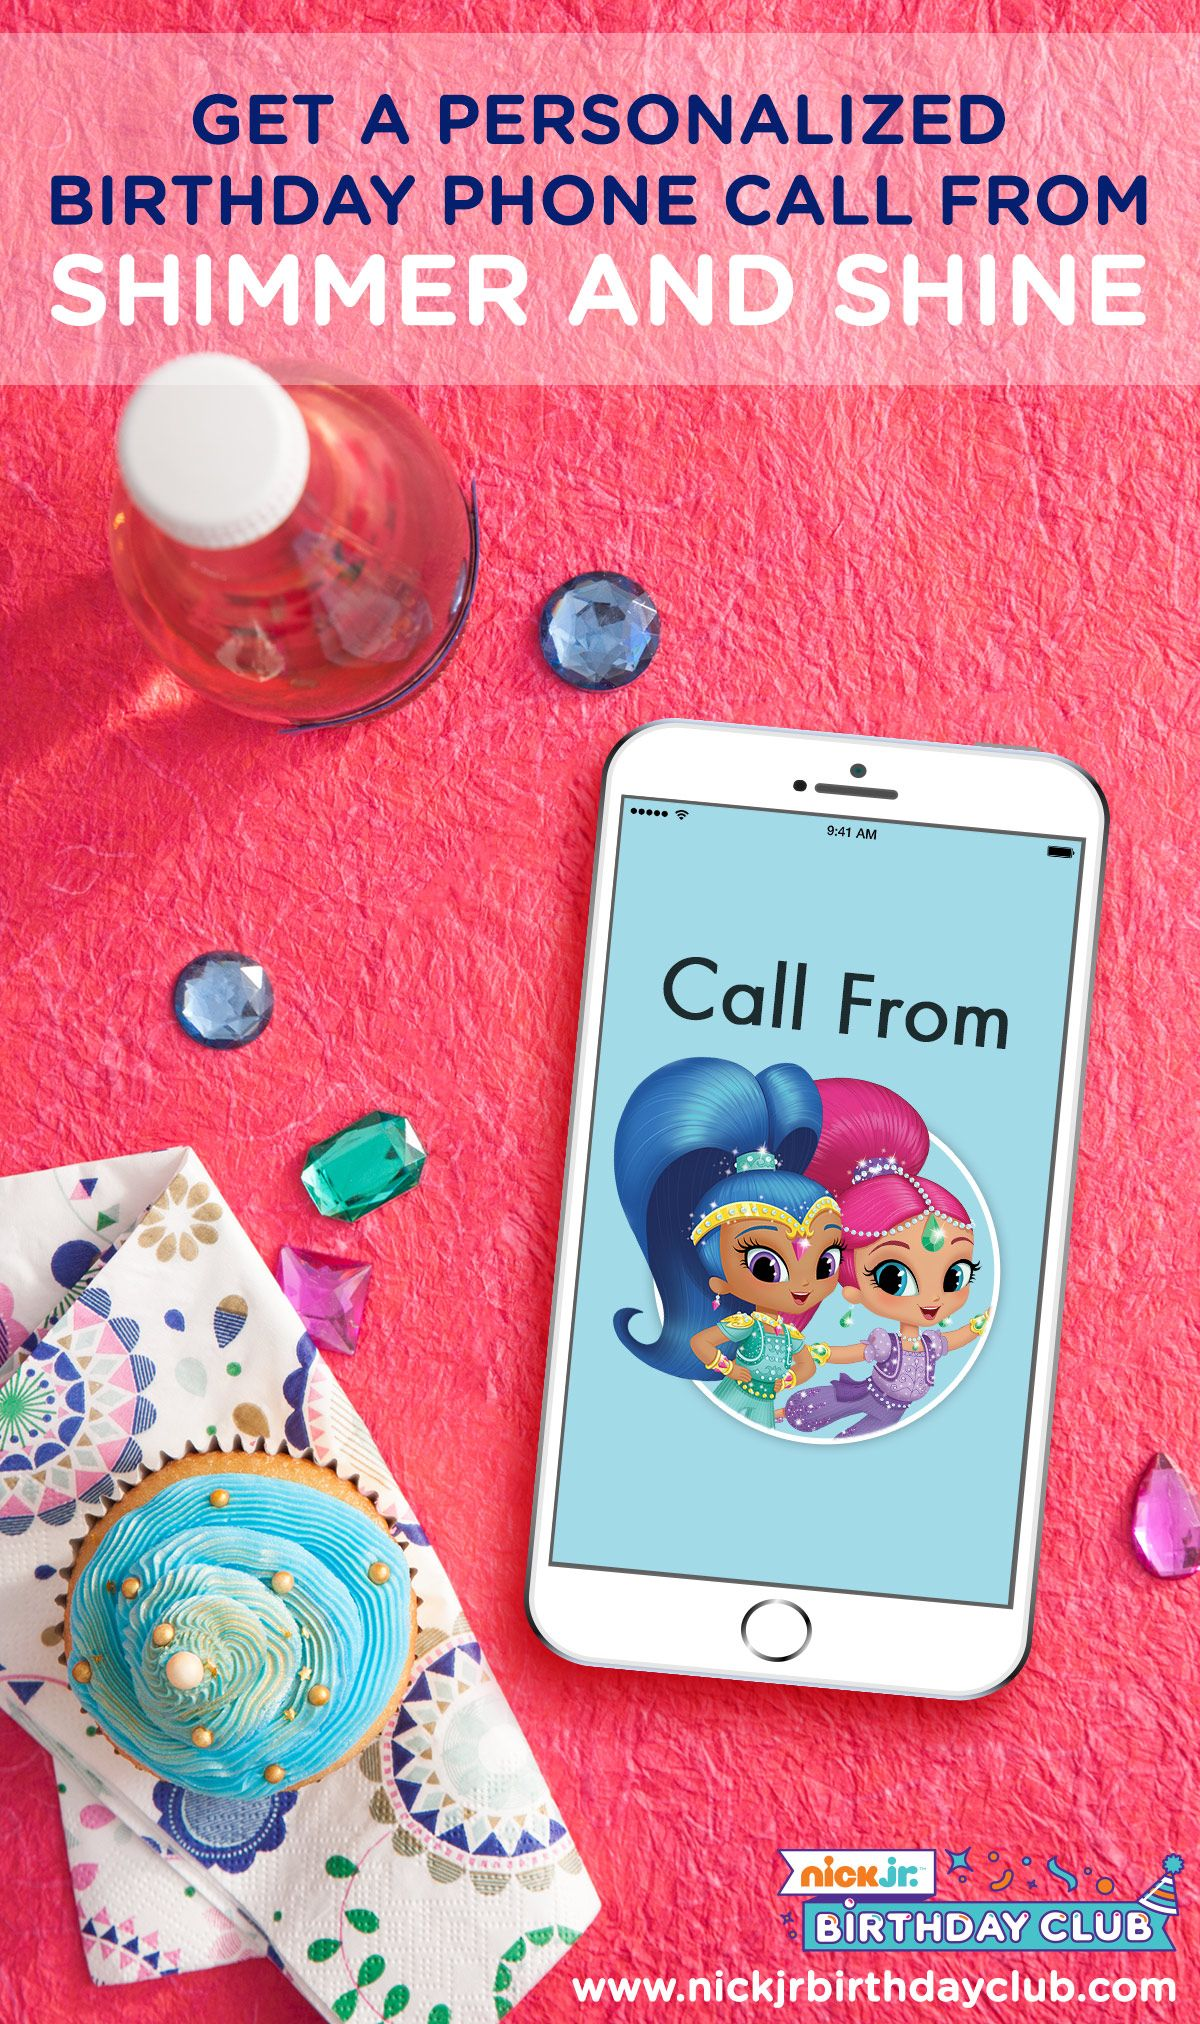 Planning a Shimmer and Shine birthday party for your preschooler ...